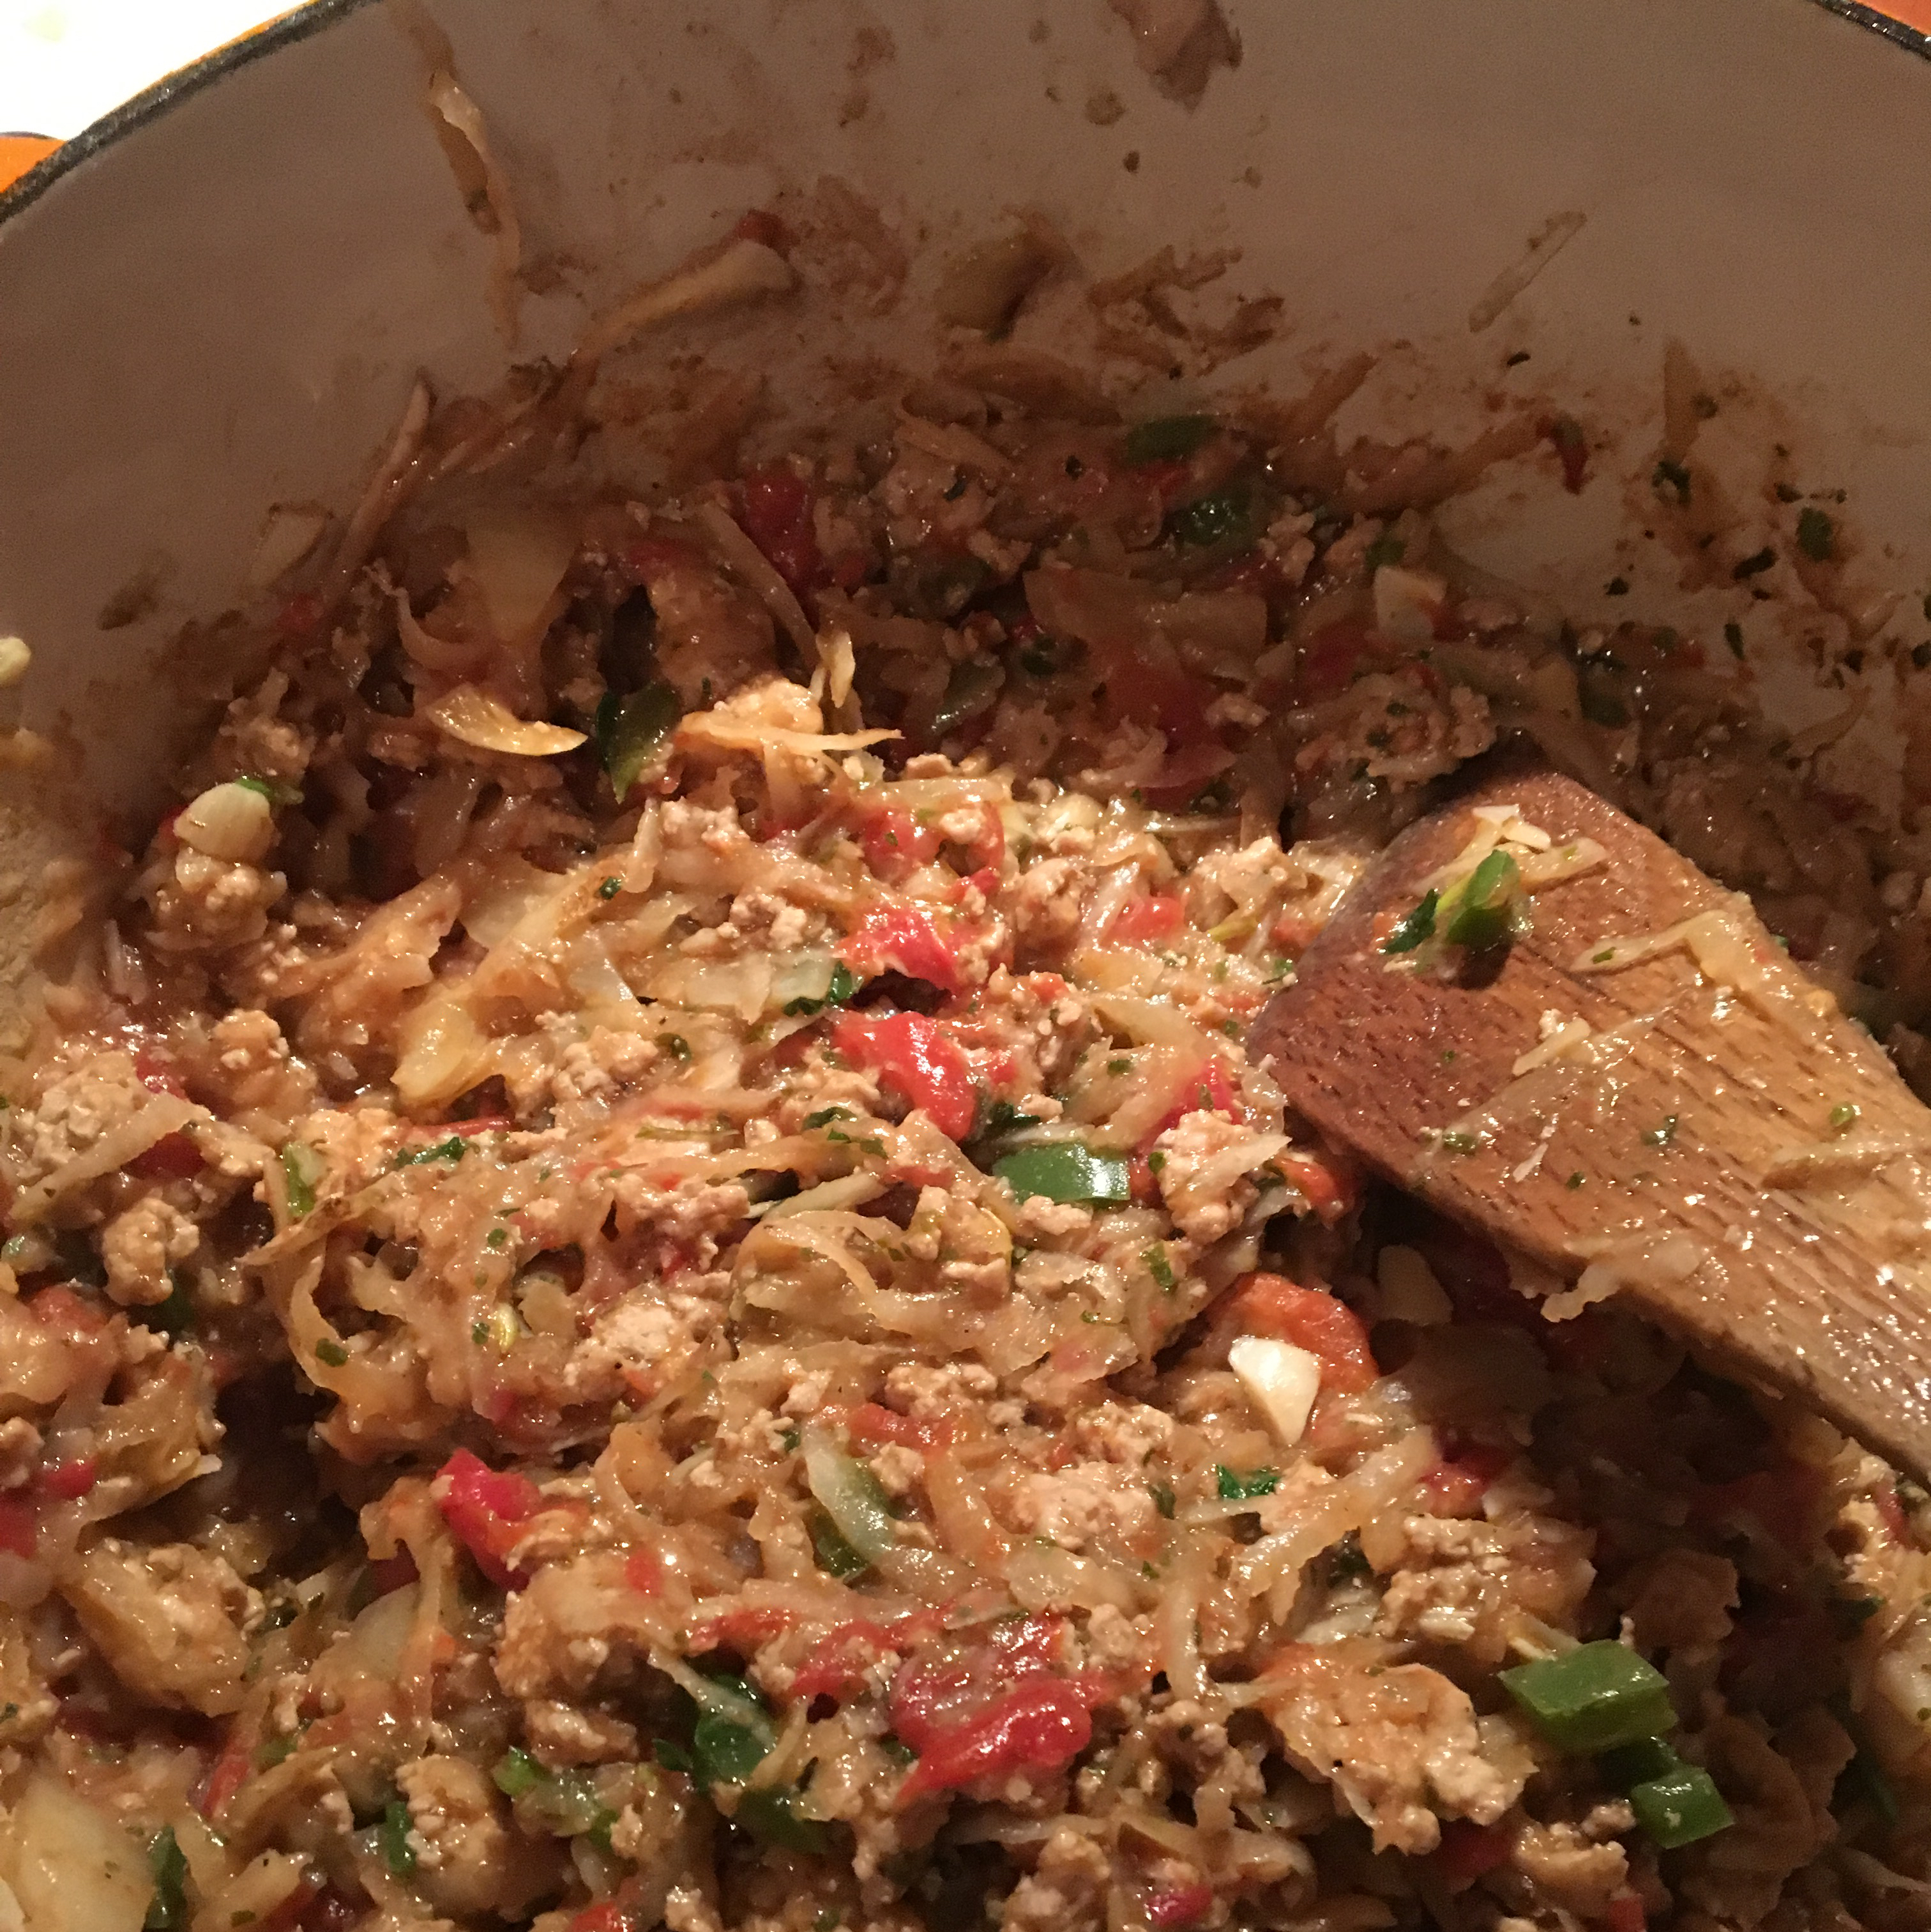 Peruvian Meat and Rice Phil Coyne